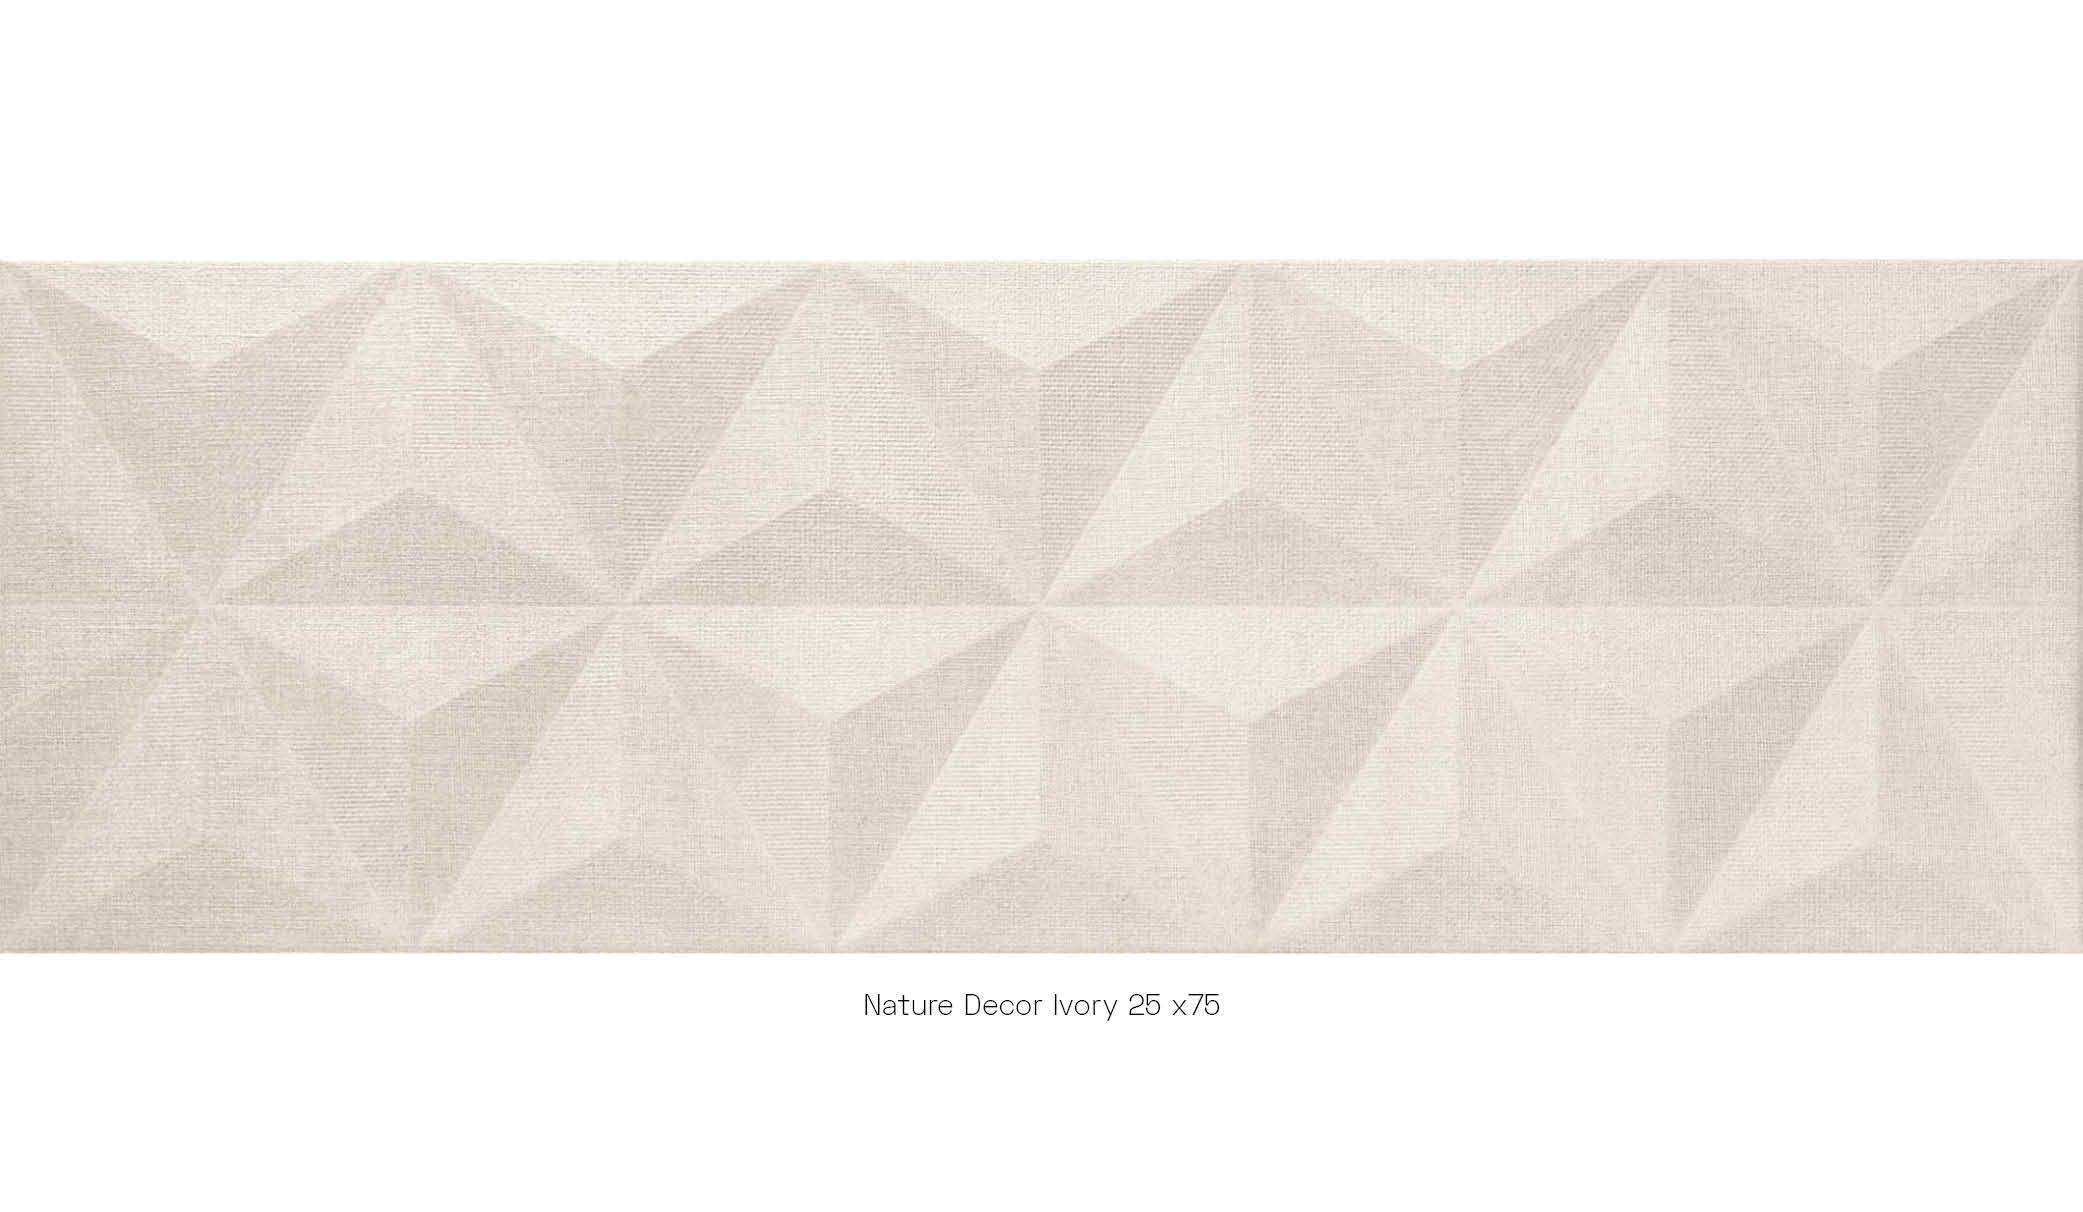 Nature decor ivory 25x75